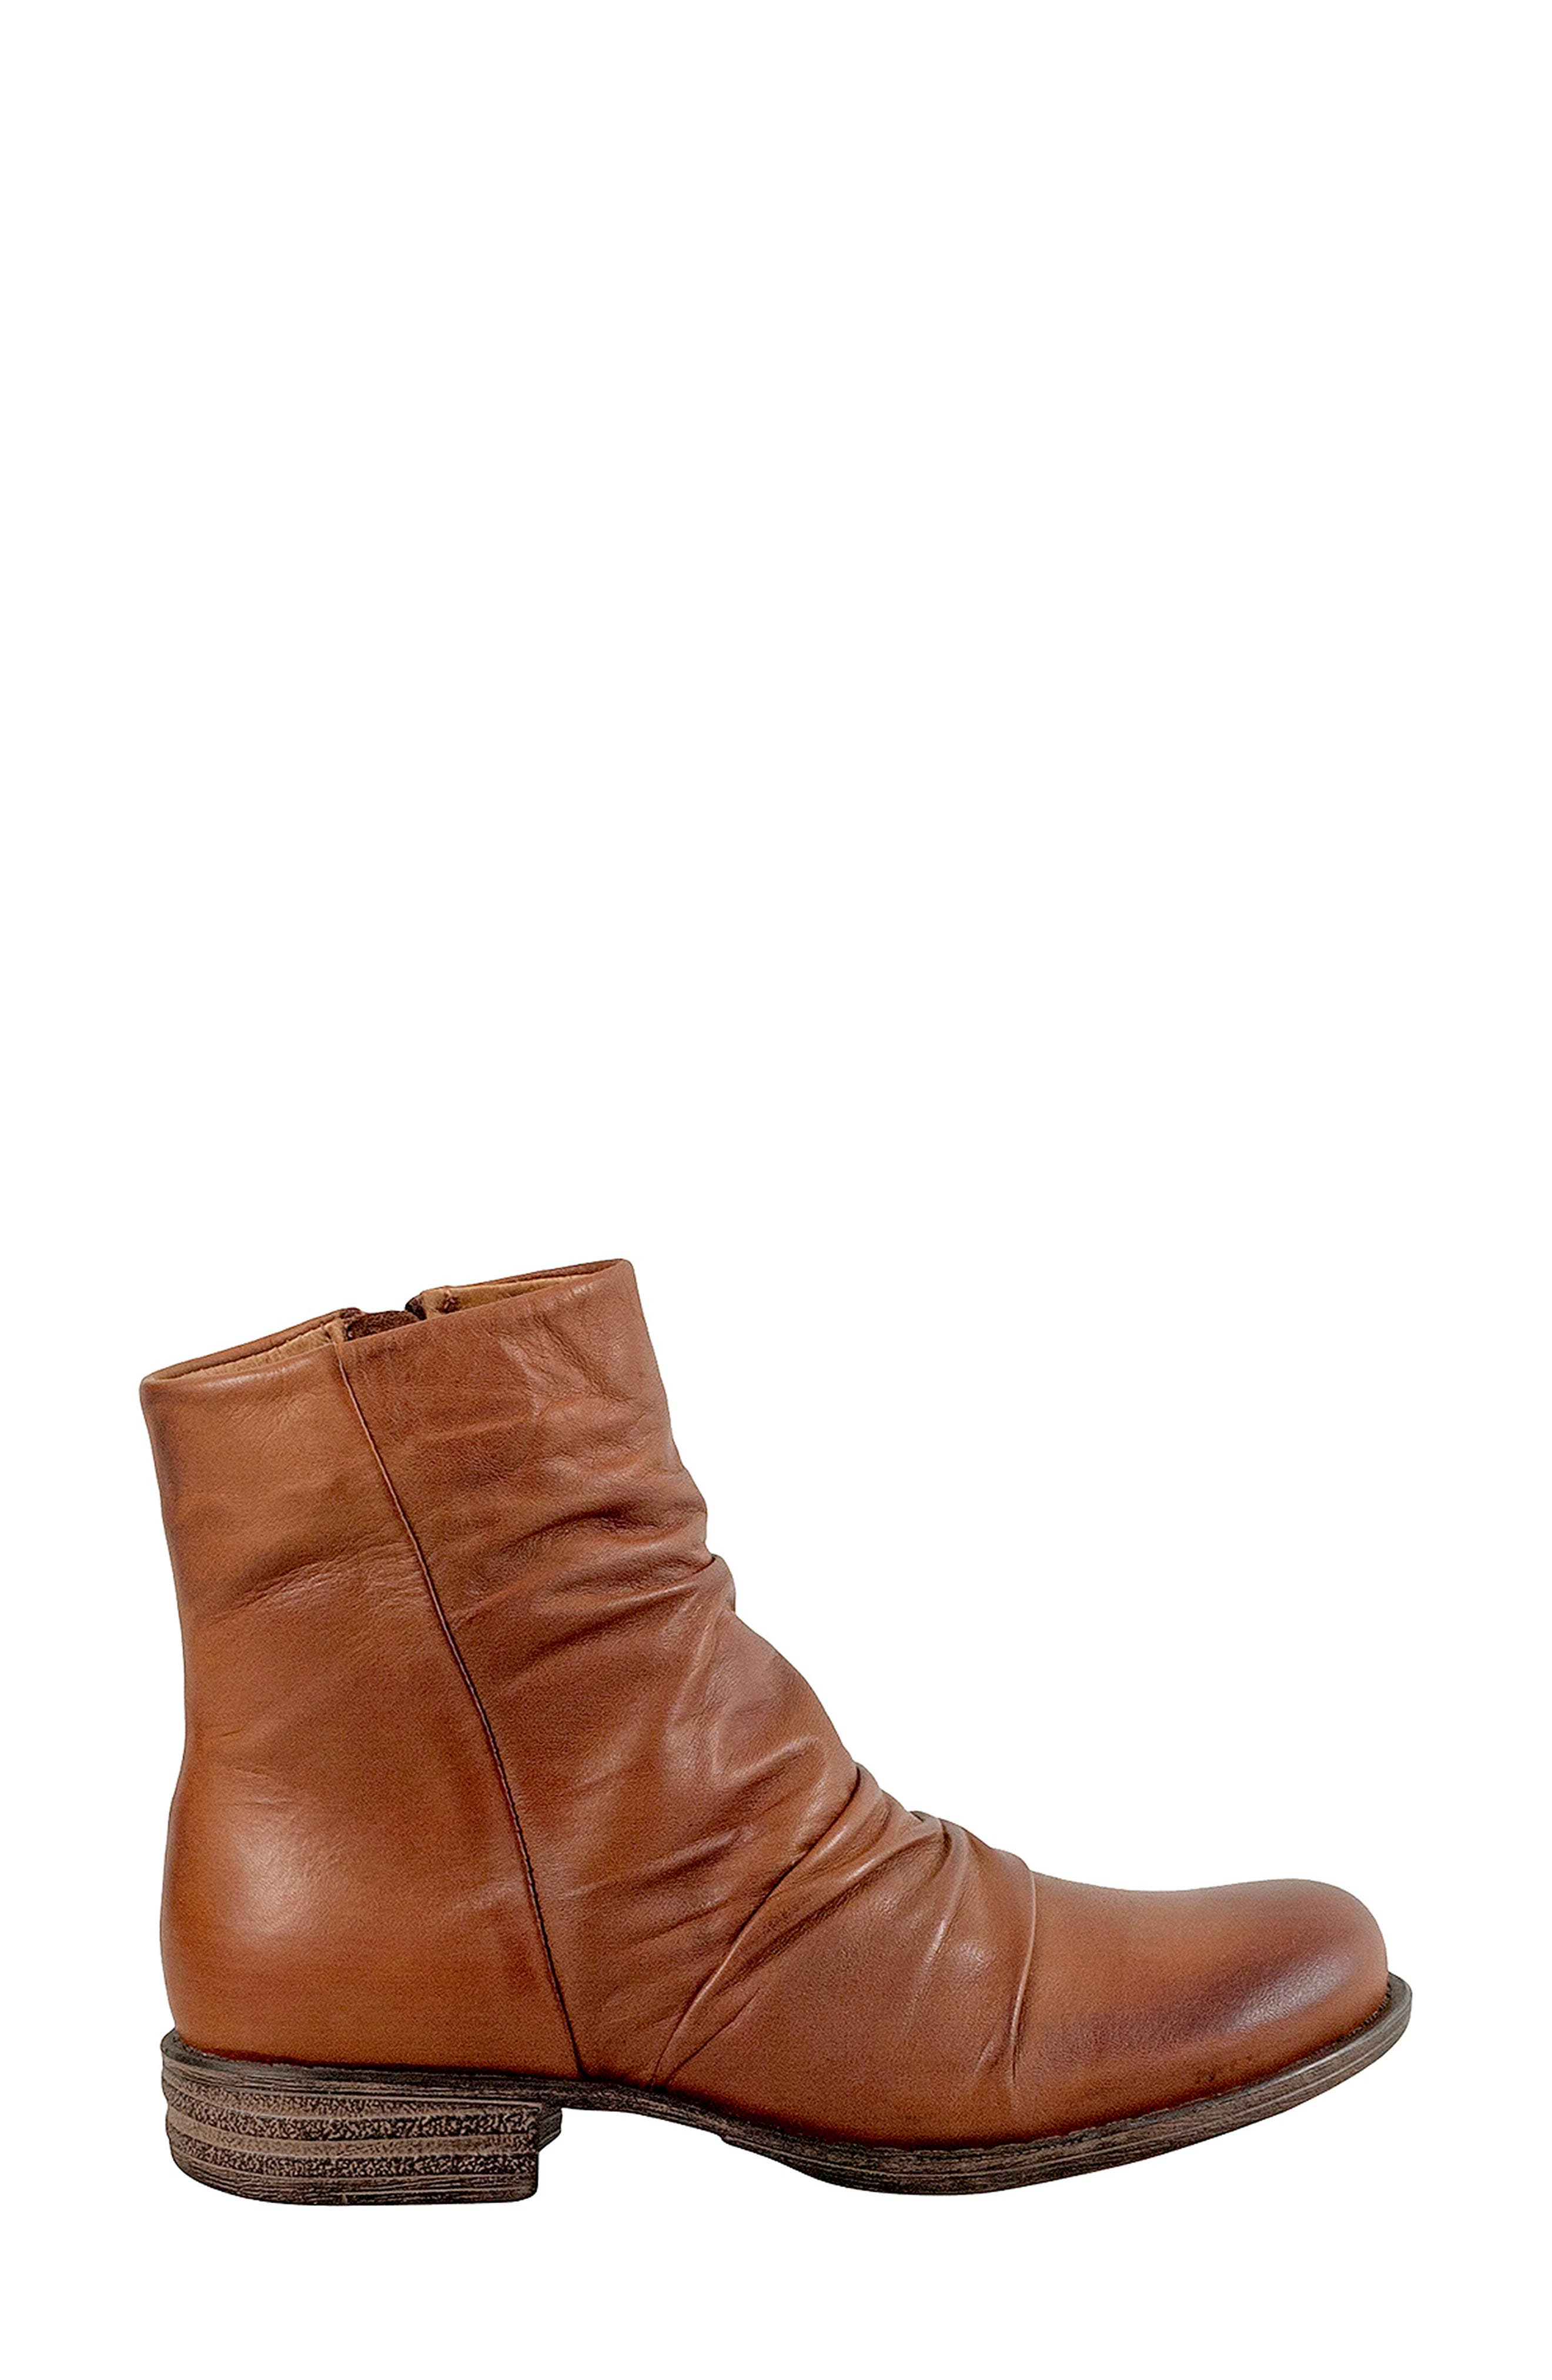 Lane Bootie,                             Alternate thumbnail 3, color,                             BRANDY LEATHER